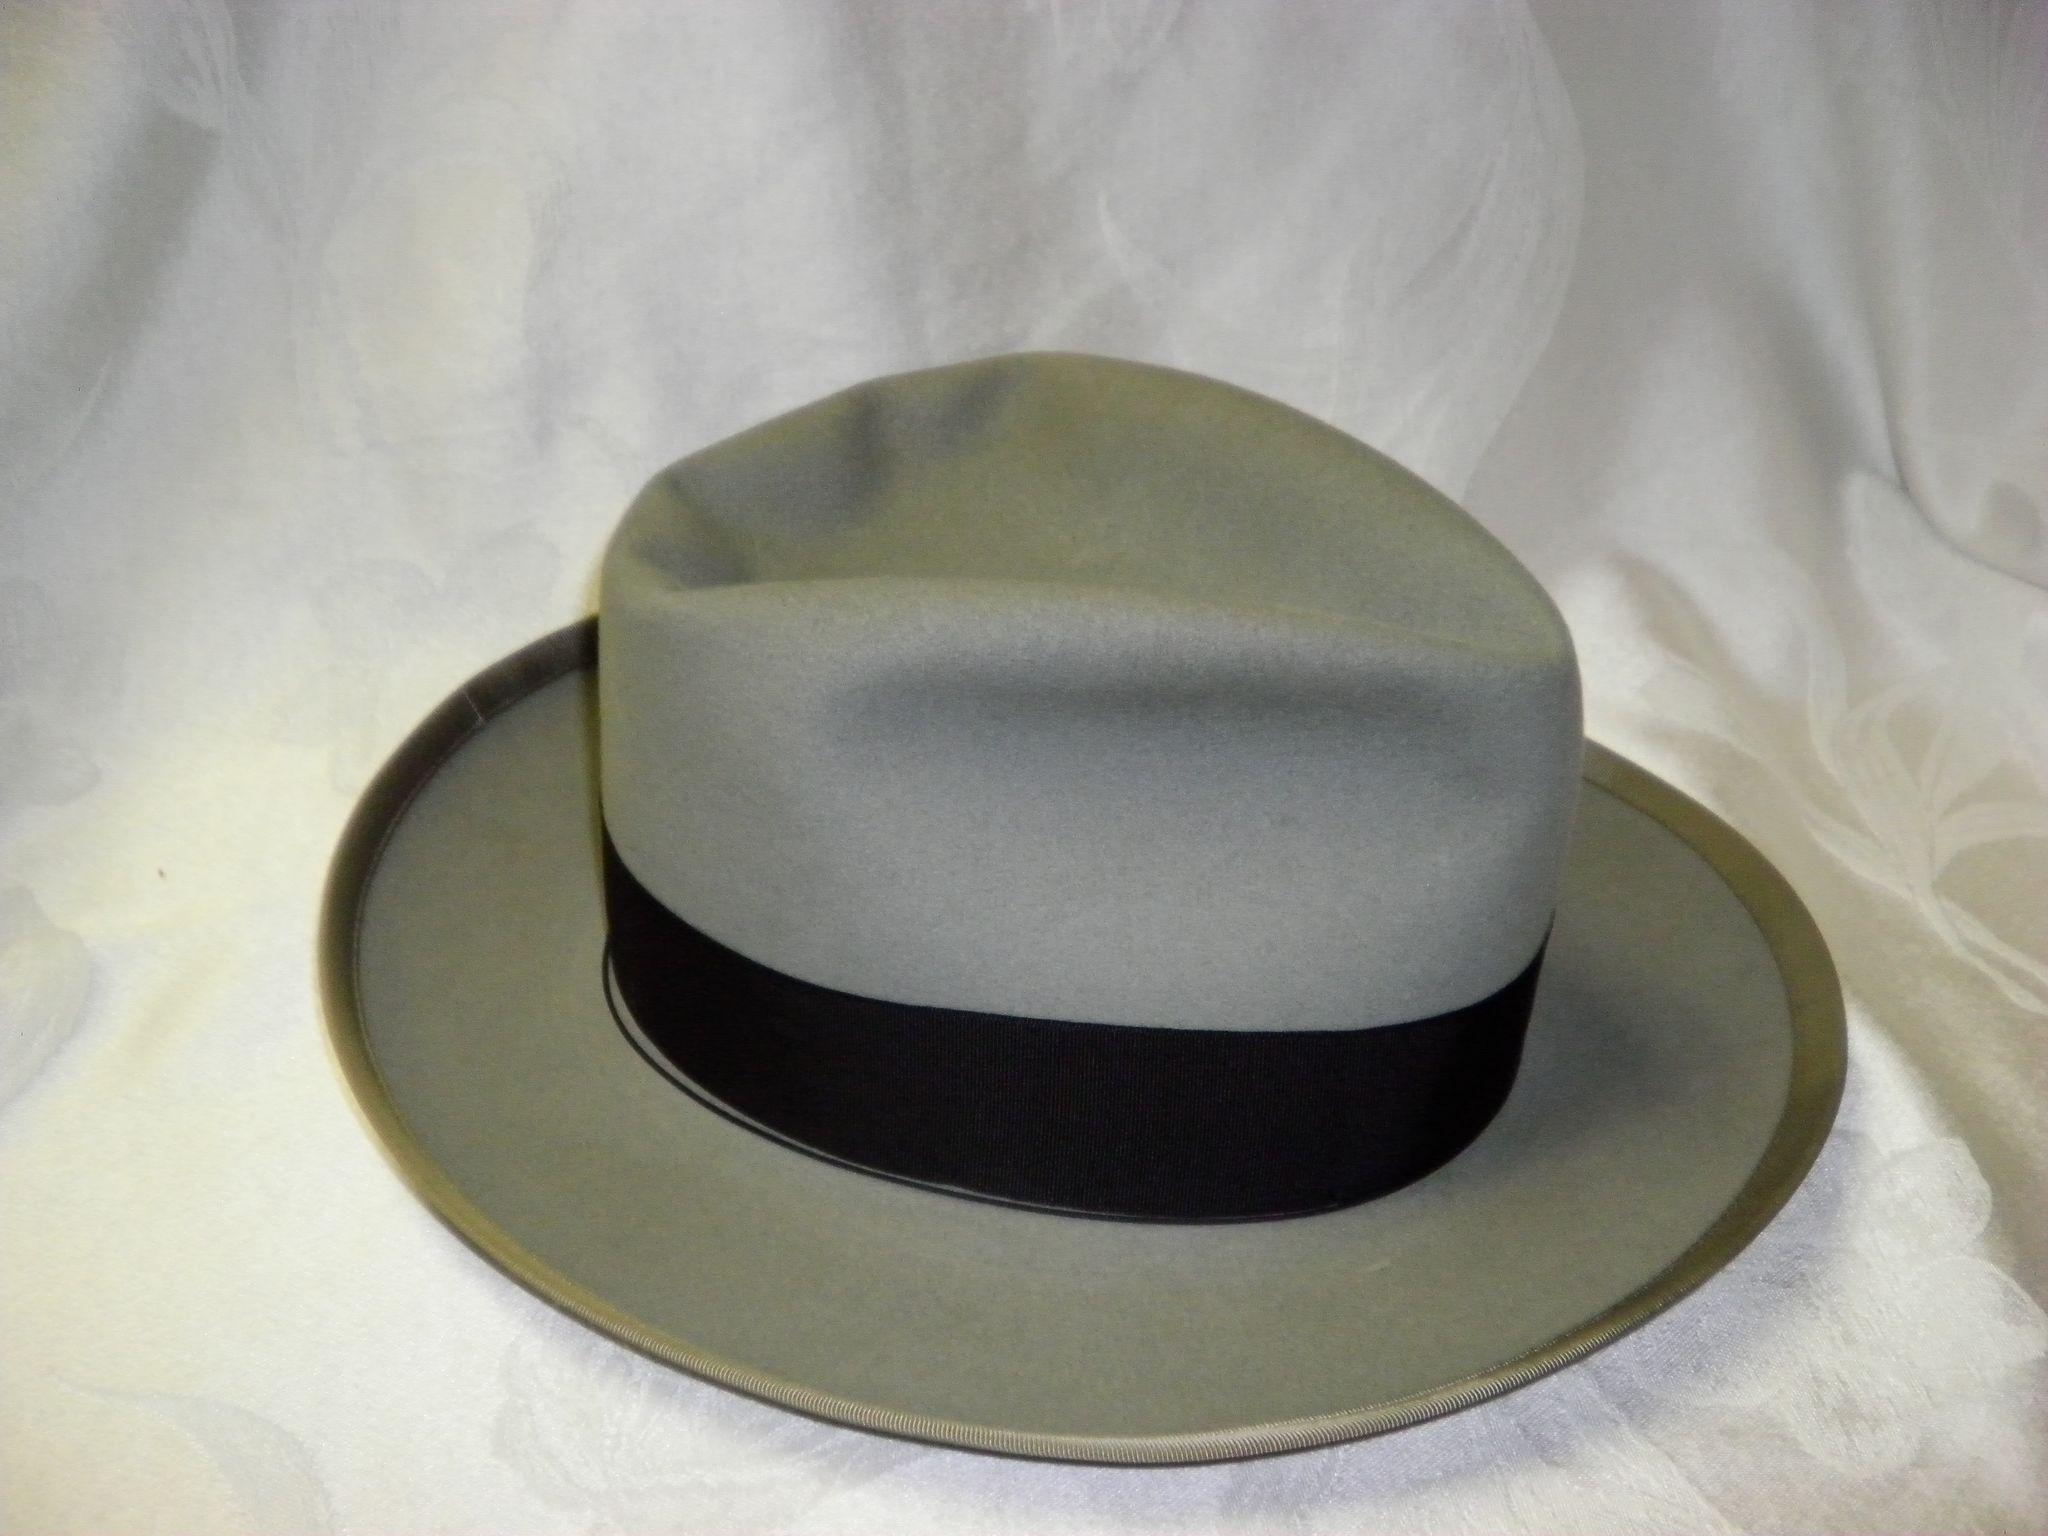 abf2e02259b5f Vintage Royal Stetson Whippet Fedora Hat With Trolly